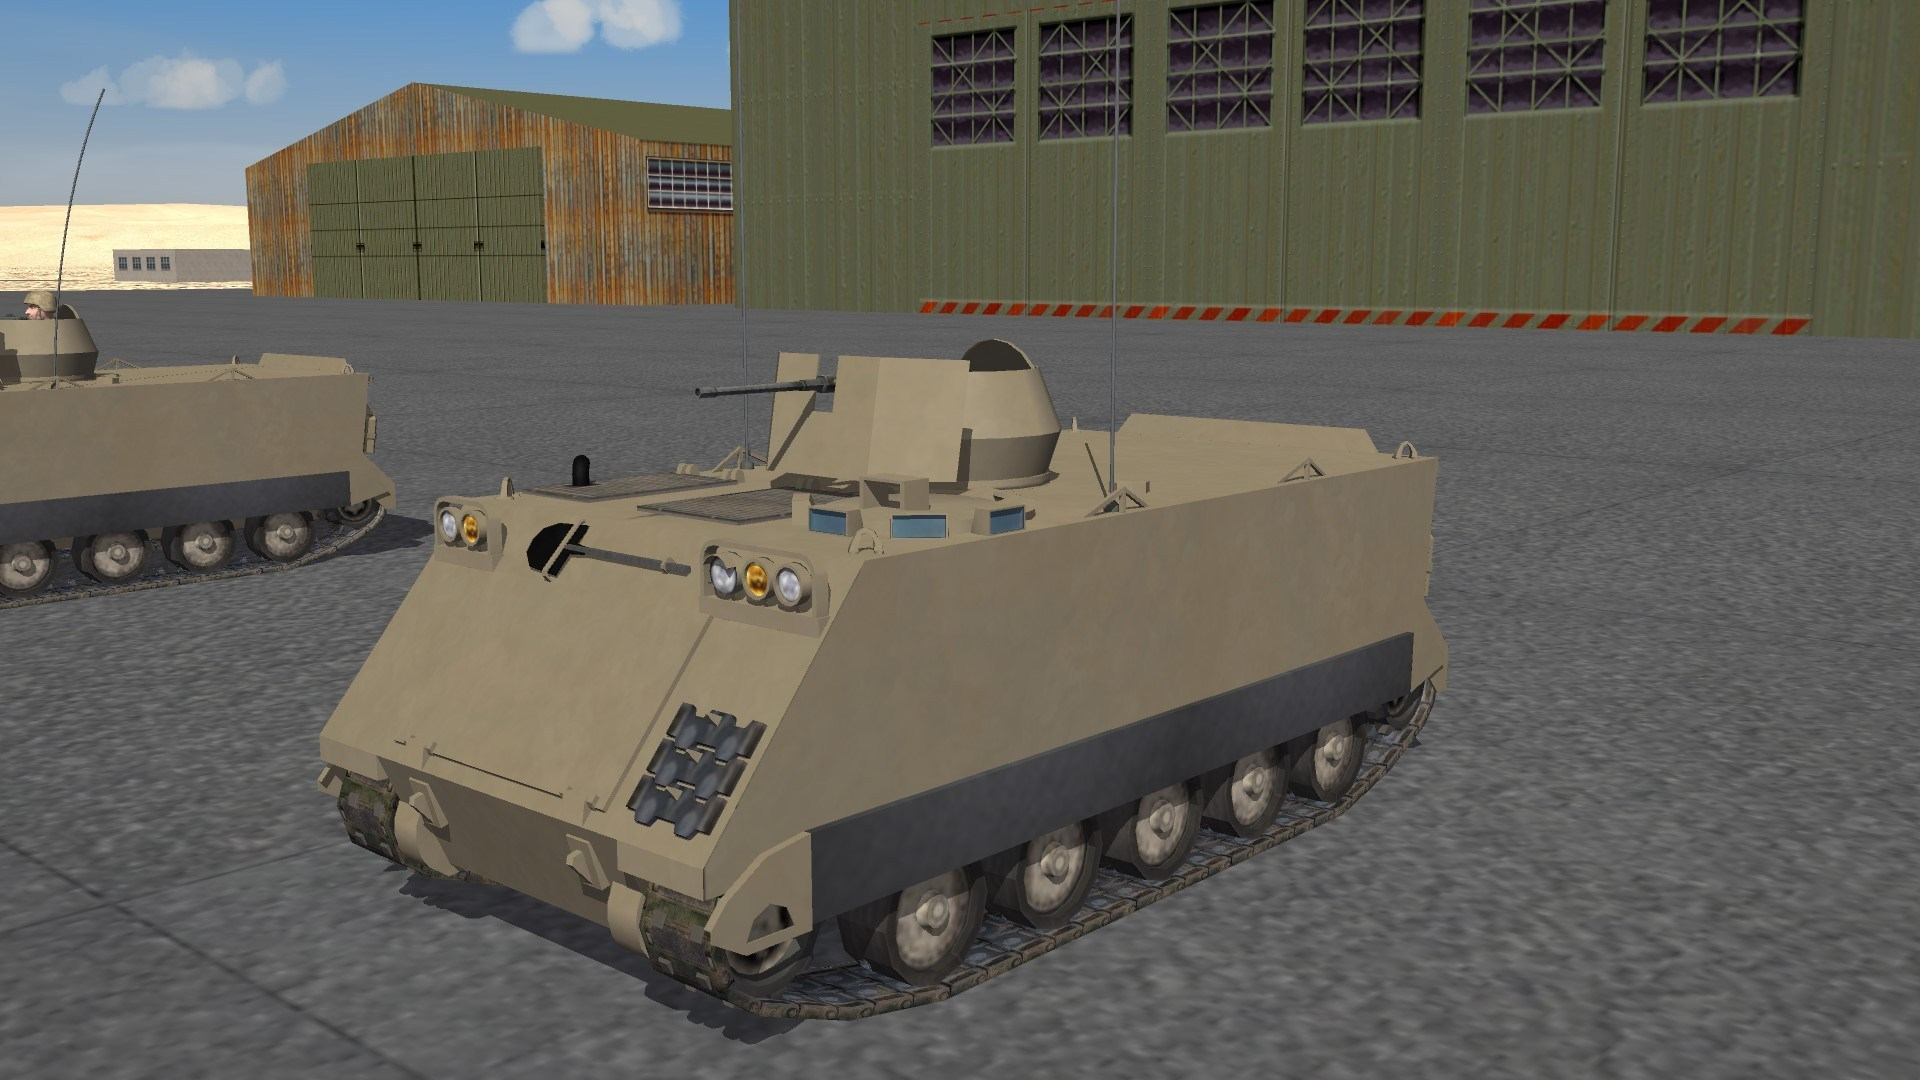 M113 ACAV from 60's to 2000 No crew